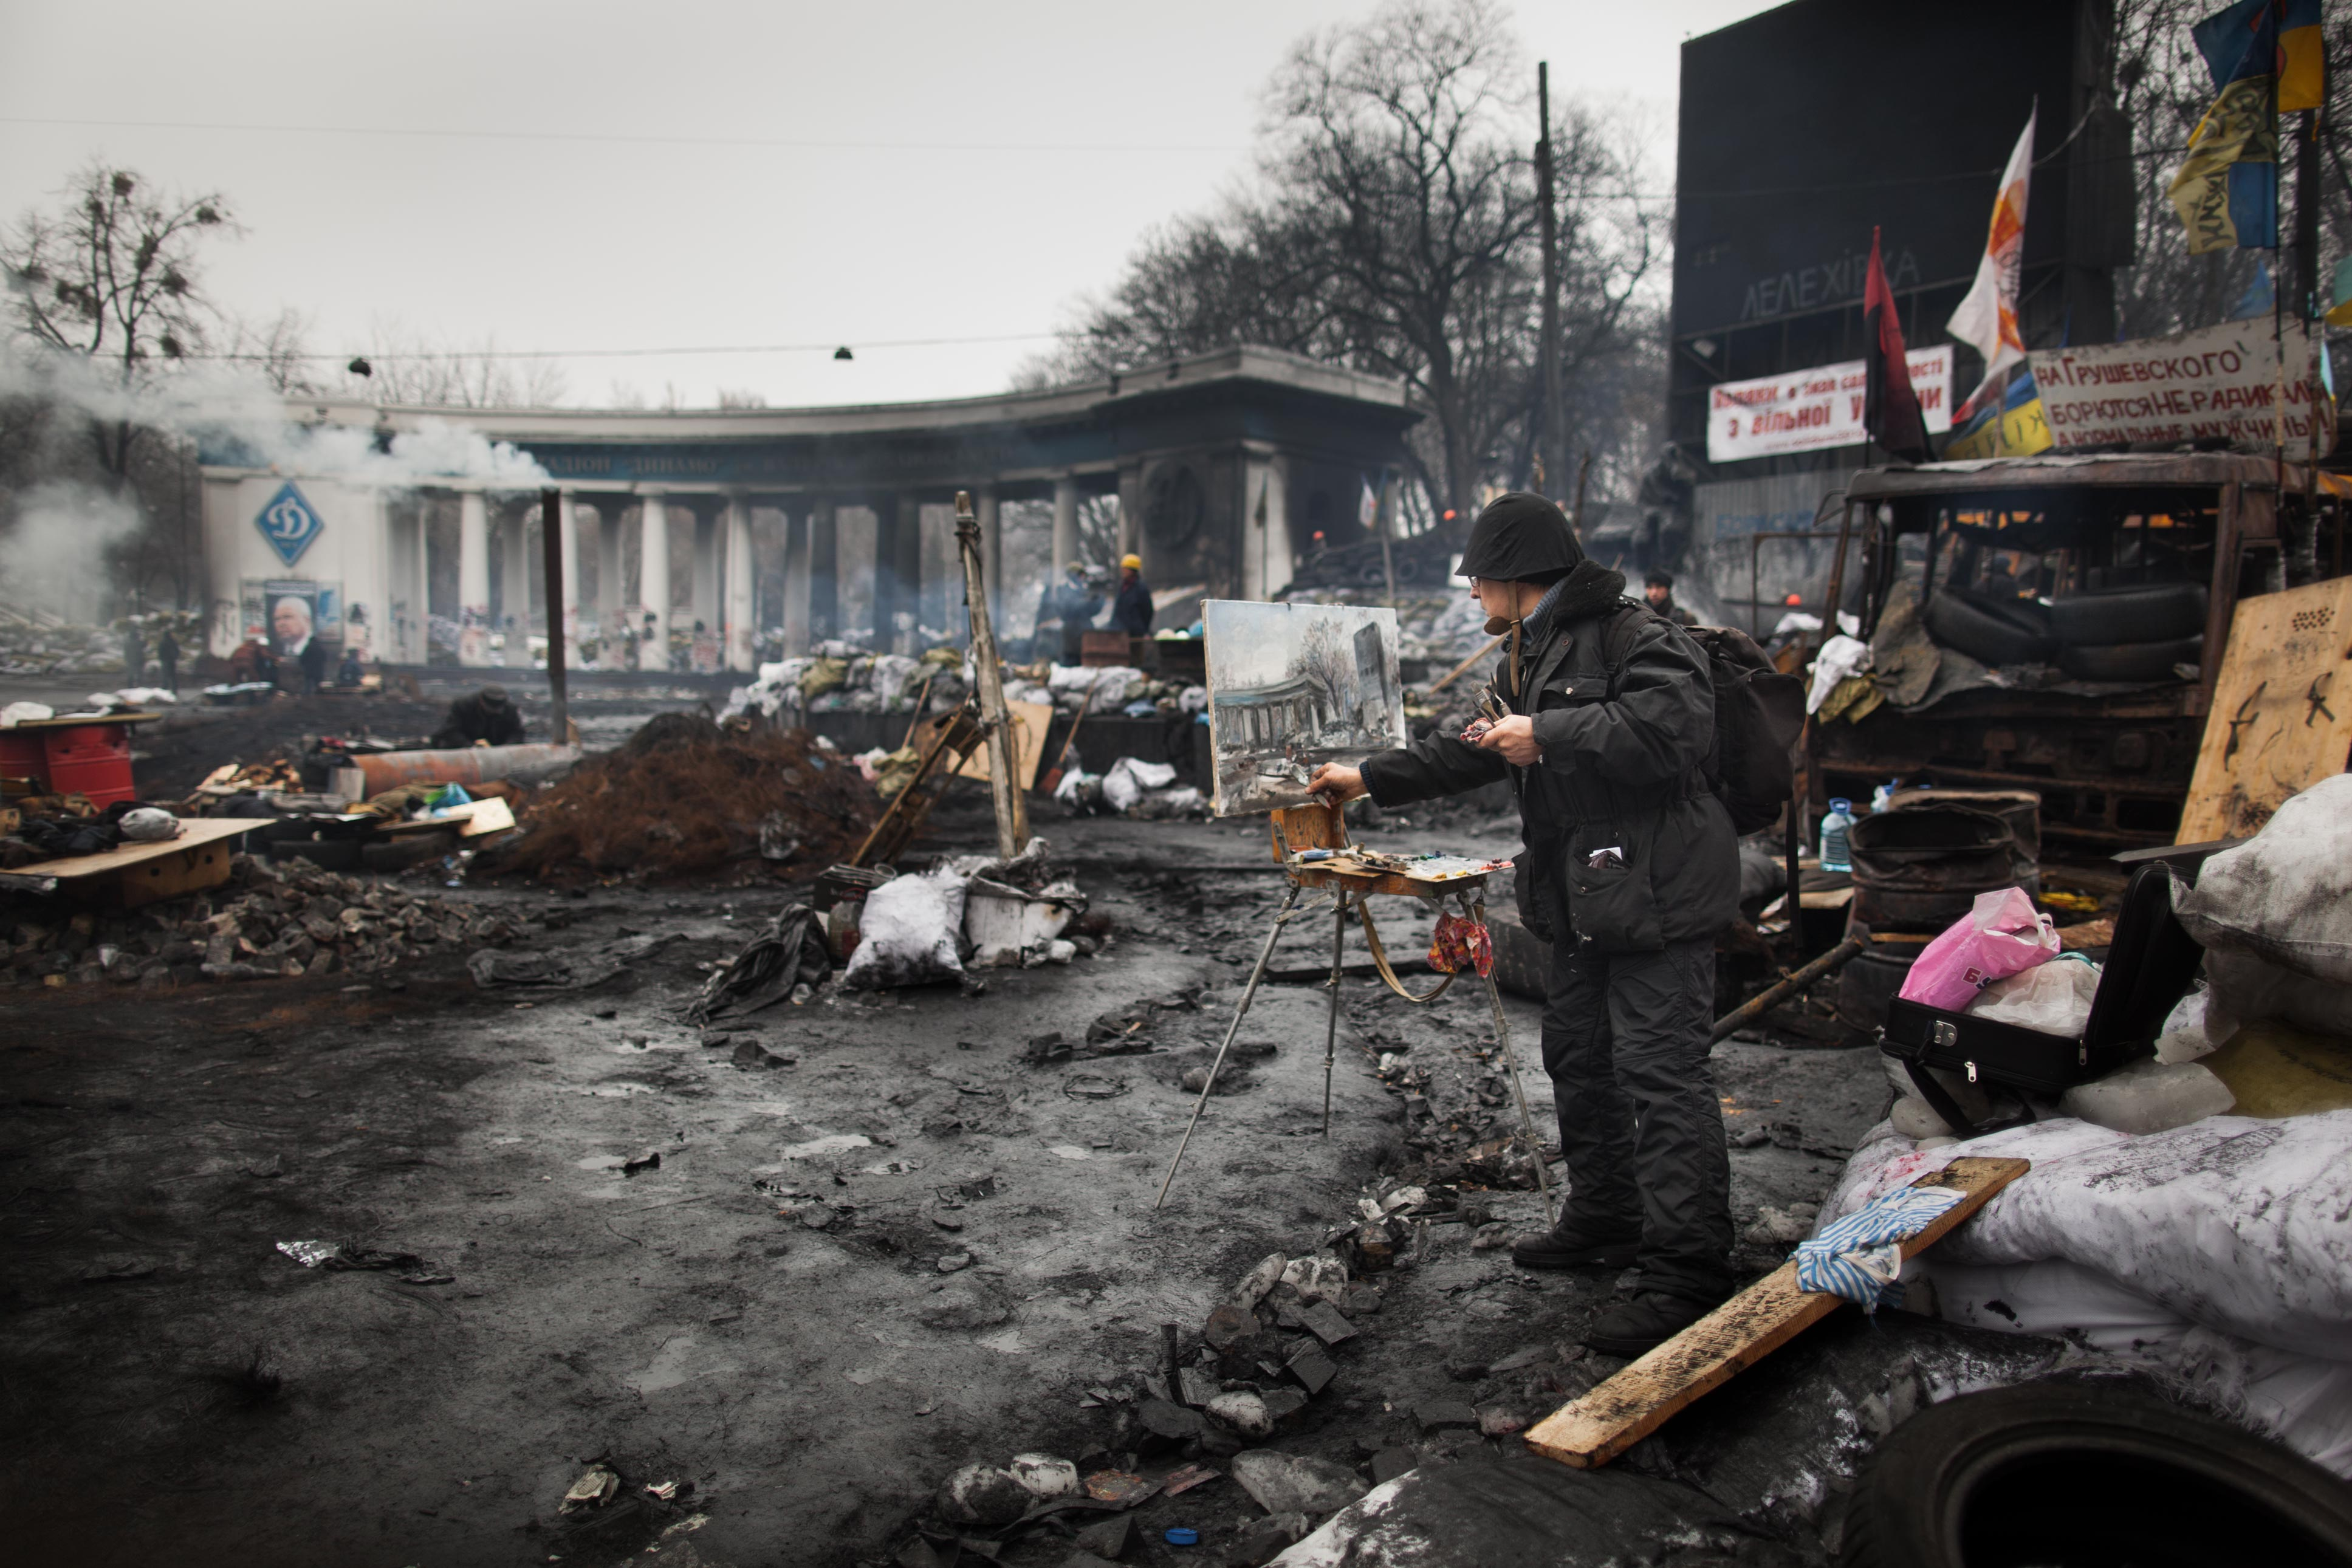 An artist paints during Ukraine's Maidan protests, February 2014.